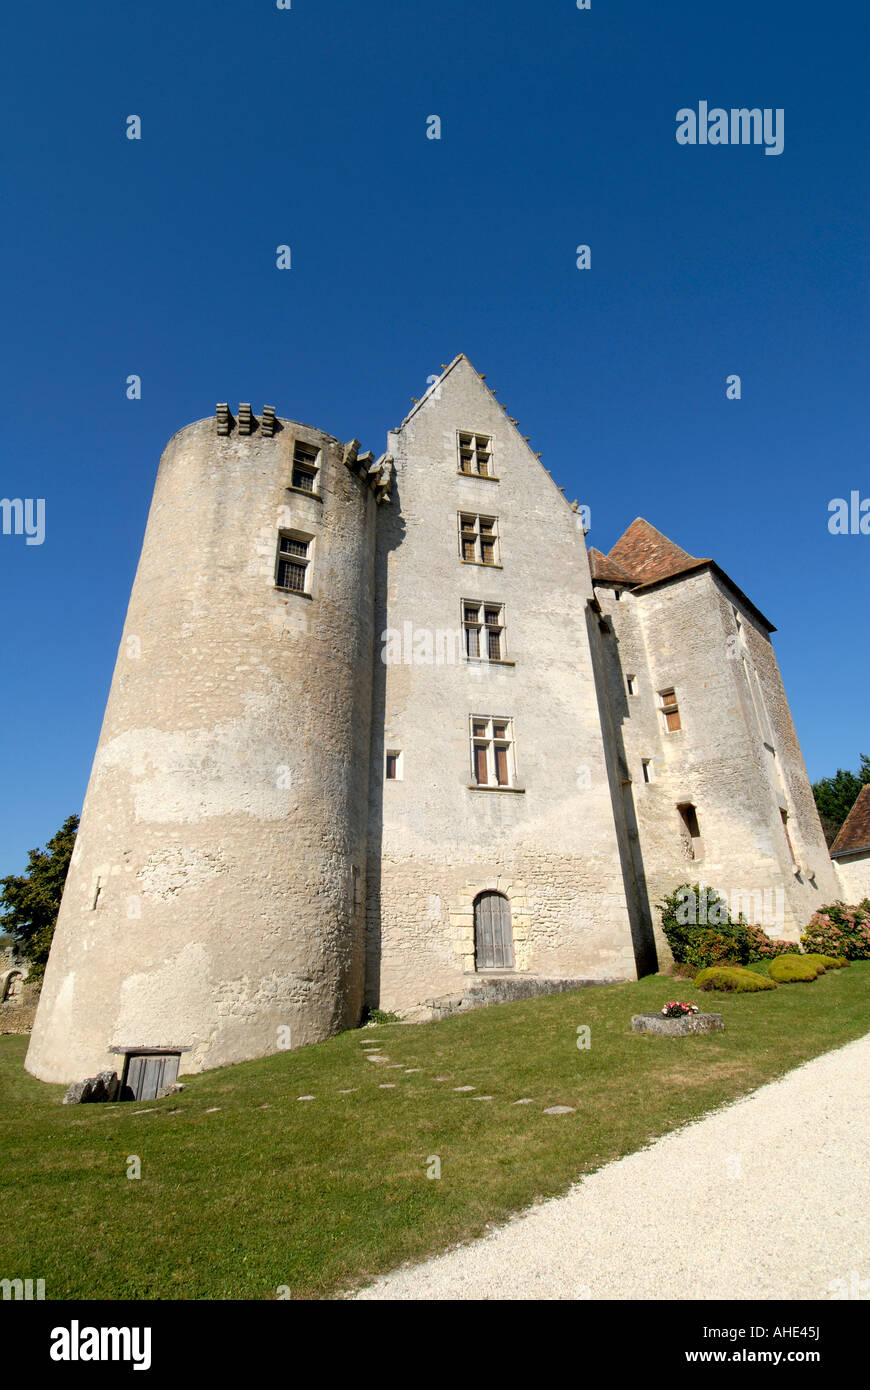 Remains of feudal chateau / fortress in the village of Betz-le-Chateau, Indre-et-Loire, France. - Stock Image